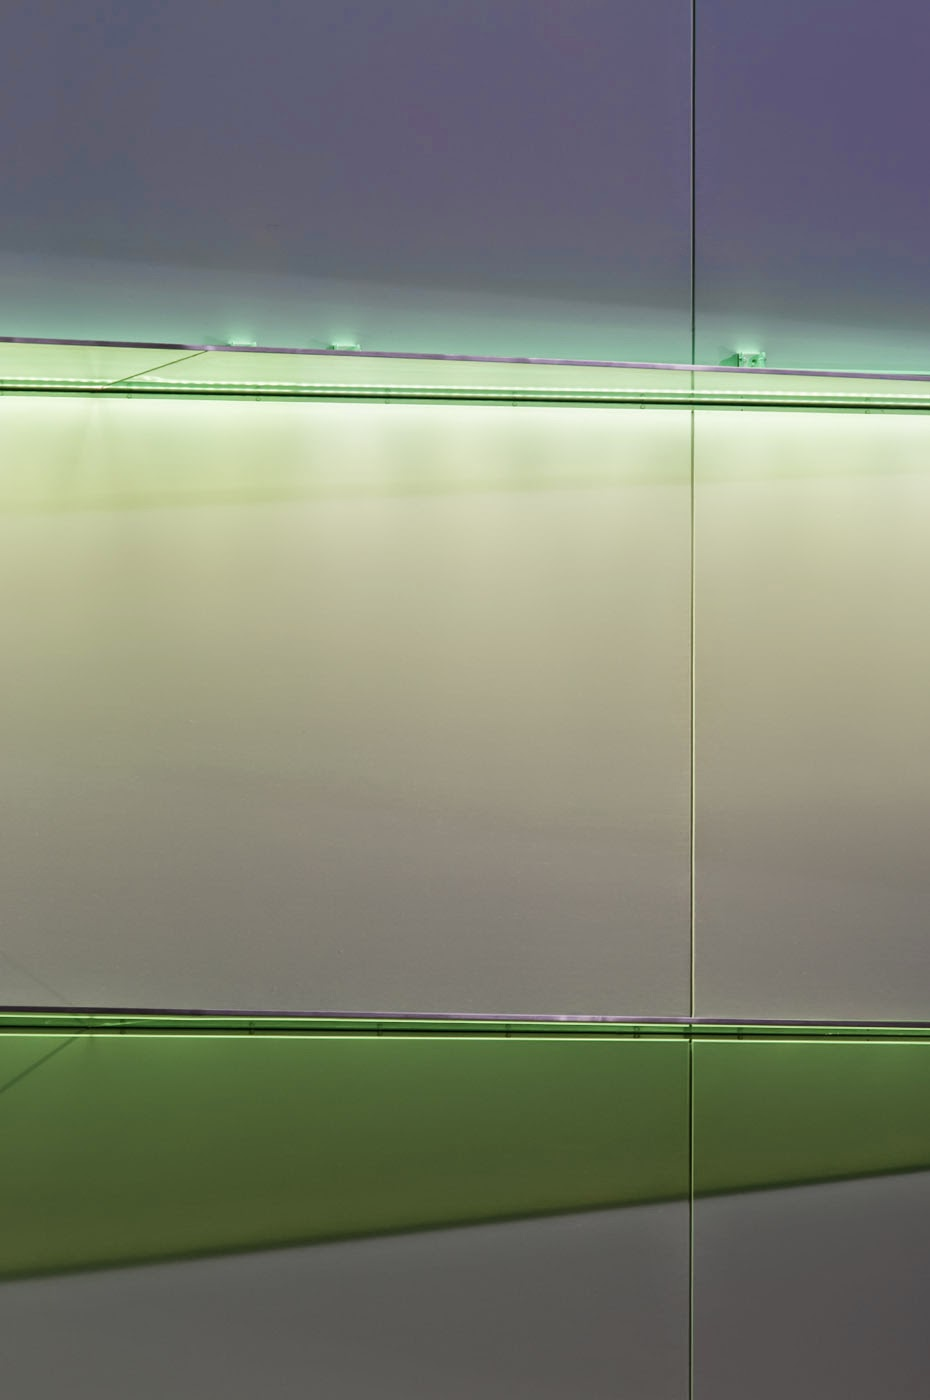 abstract, abstraction, abstractional, graphic, façade, tim Macauley, Macauley, studio 505, architects, architectural, postmodern, postmodernist, modern, new, Lonsdale st, Melbourne, Australia, glass, fins,